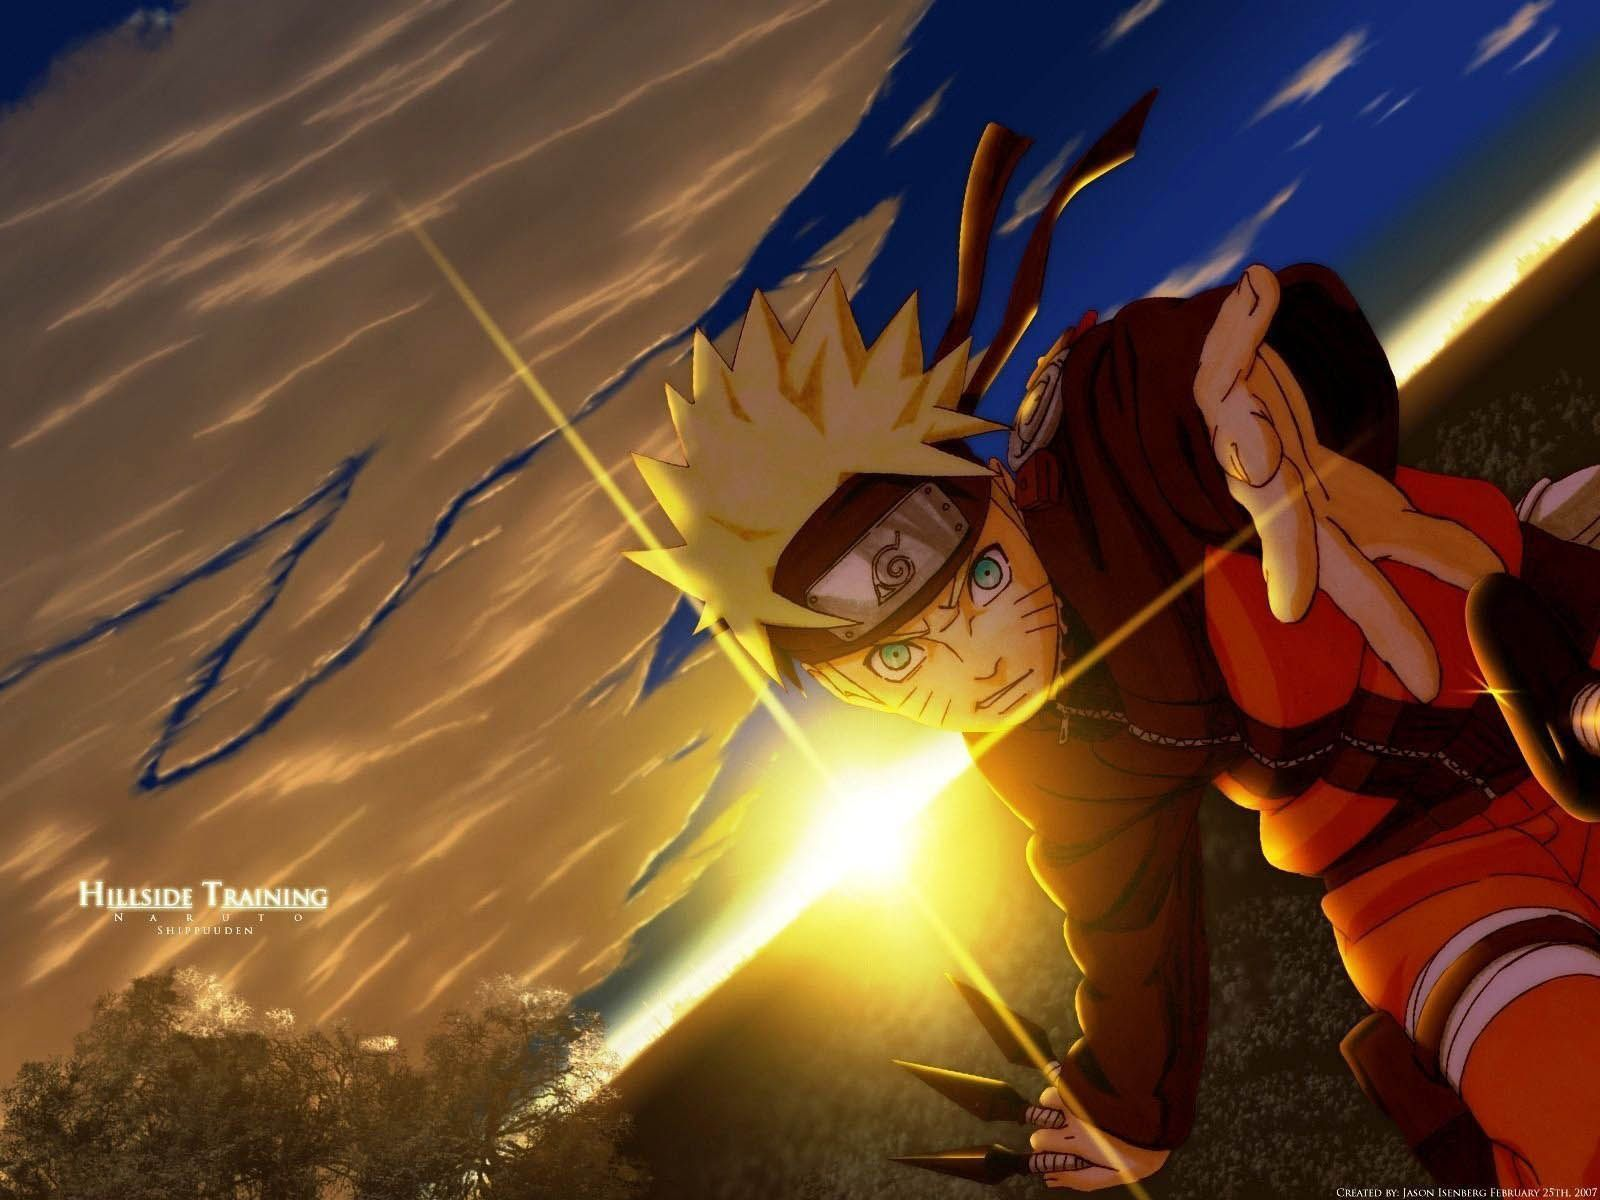 naruto shippuden cell phone wallpapers 2015 - wallpaper cave